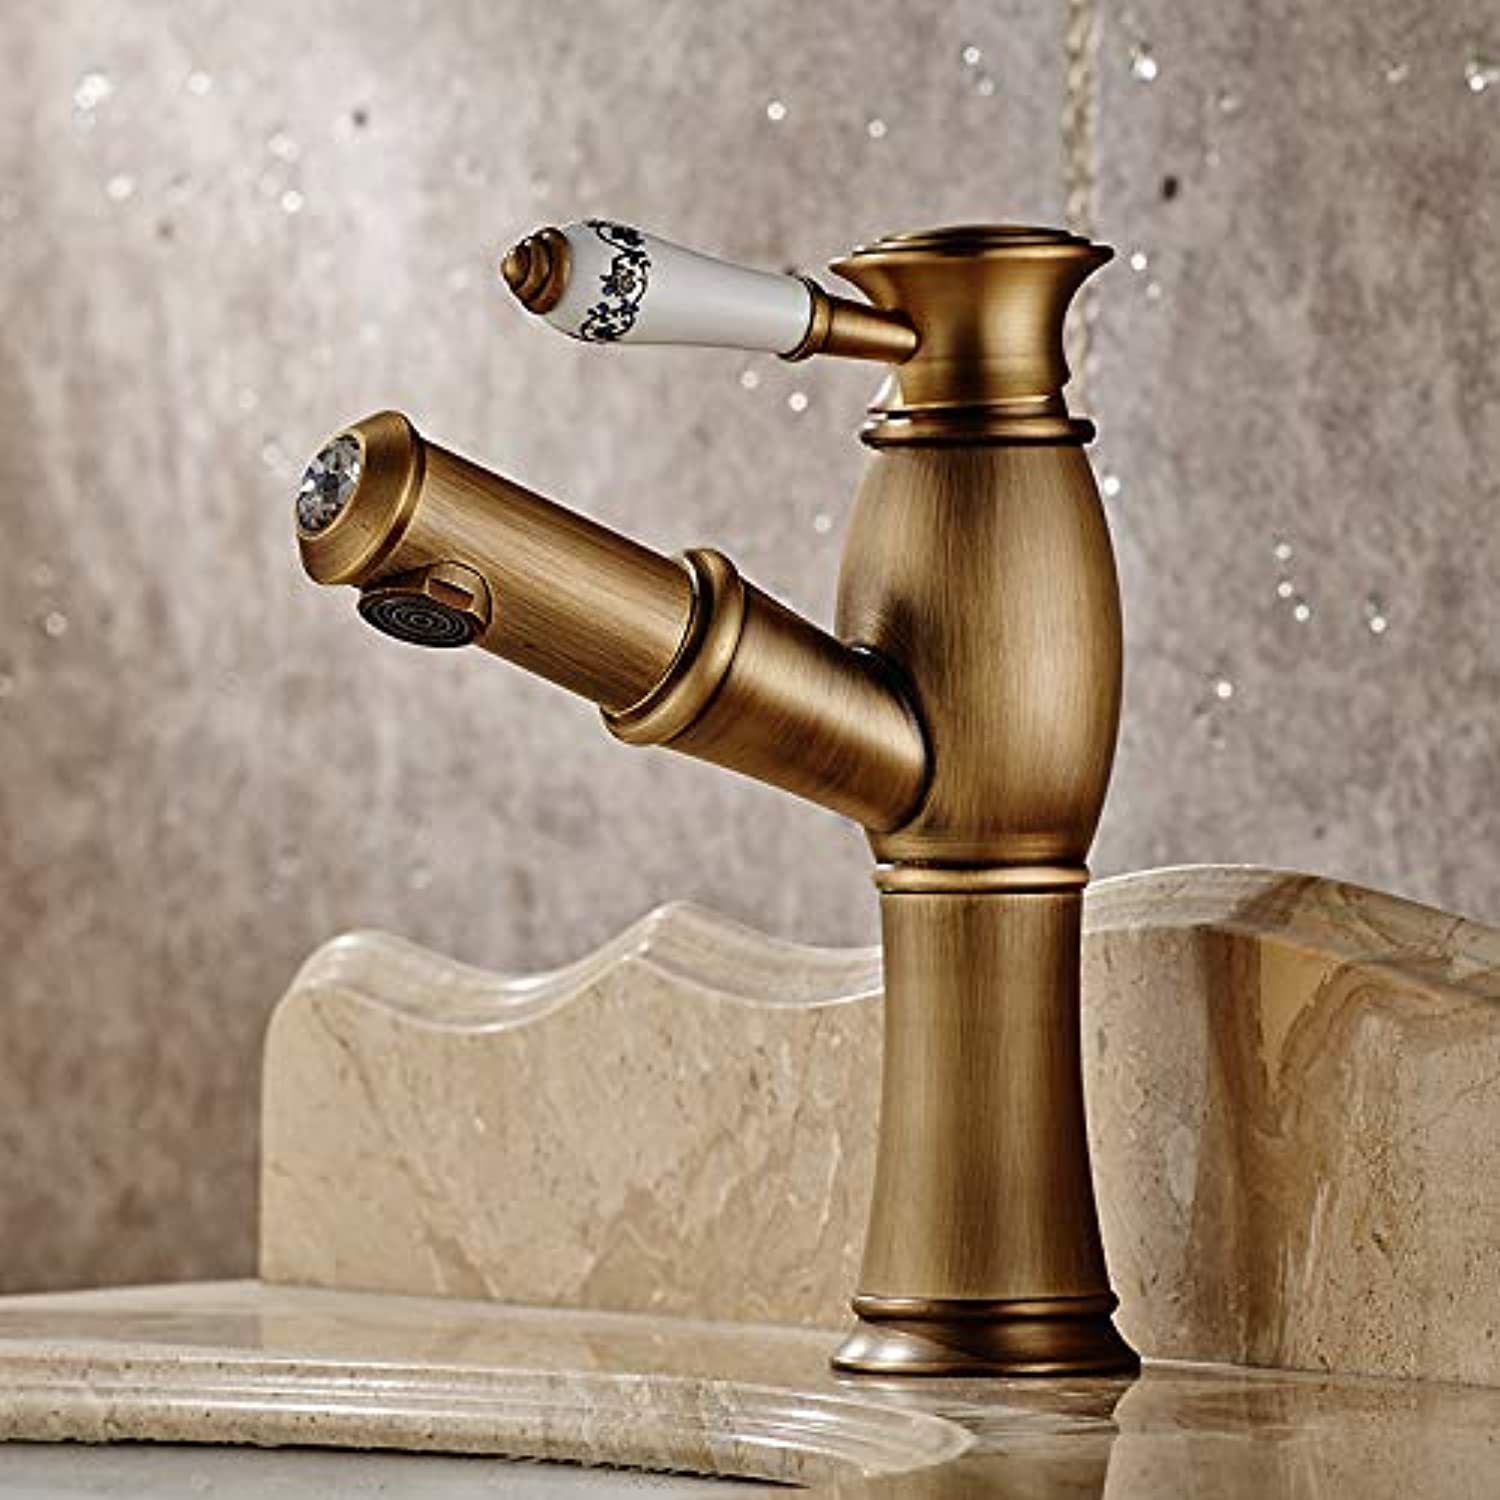 FORTR HOME Hot and cold wash basin faucet pink gold European faucet faucet bathroom counter faucet